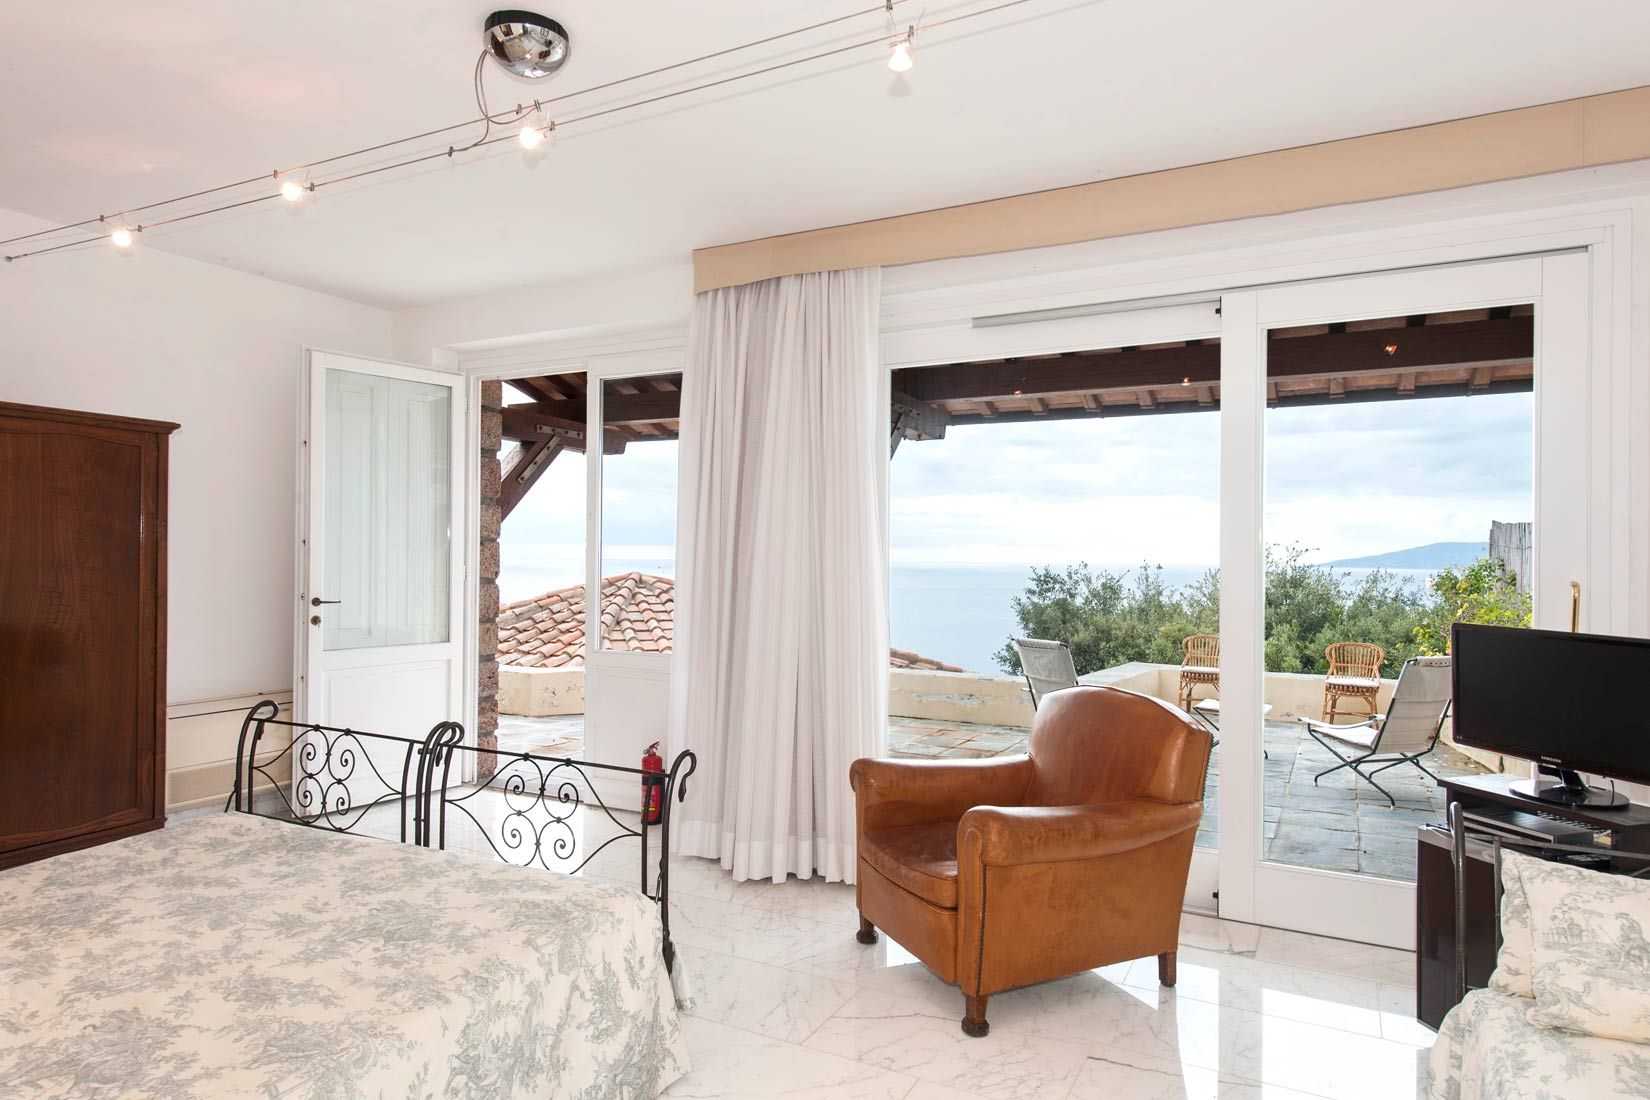 Bedroom With An Italian View